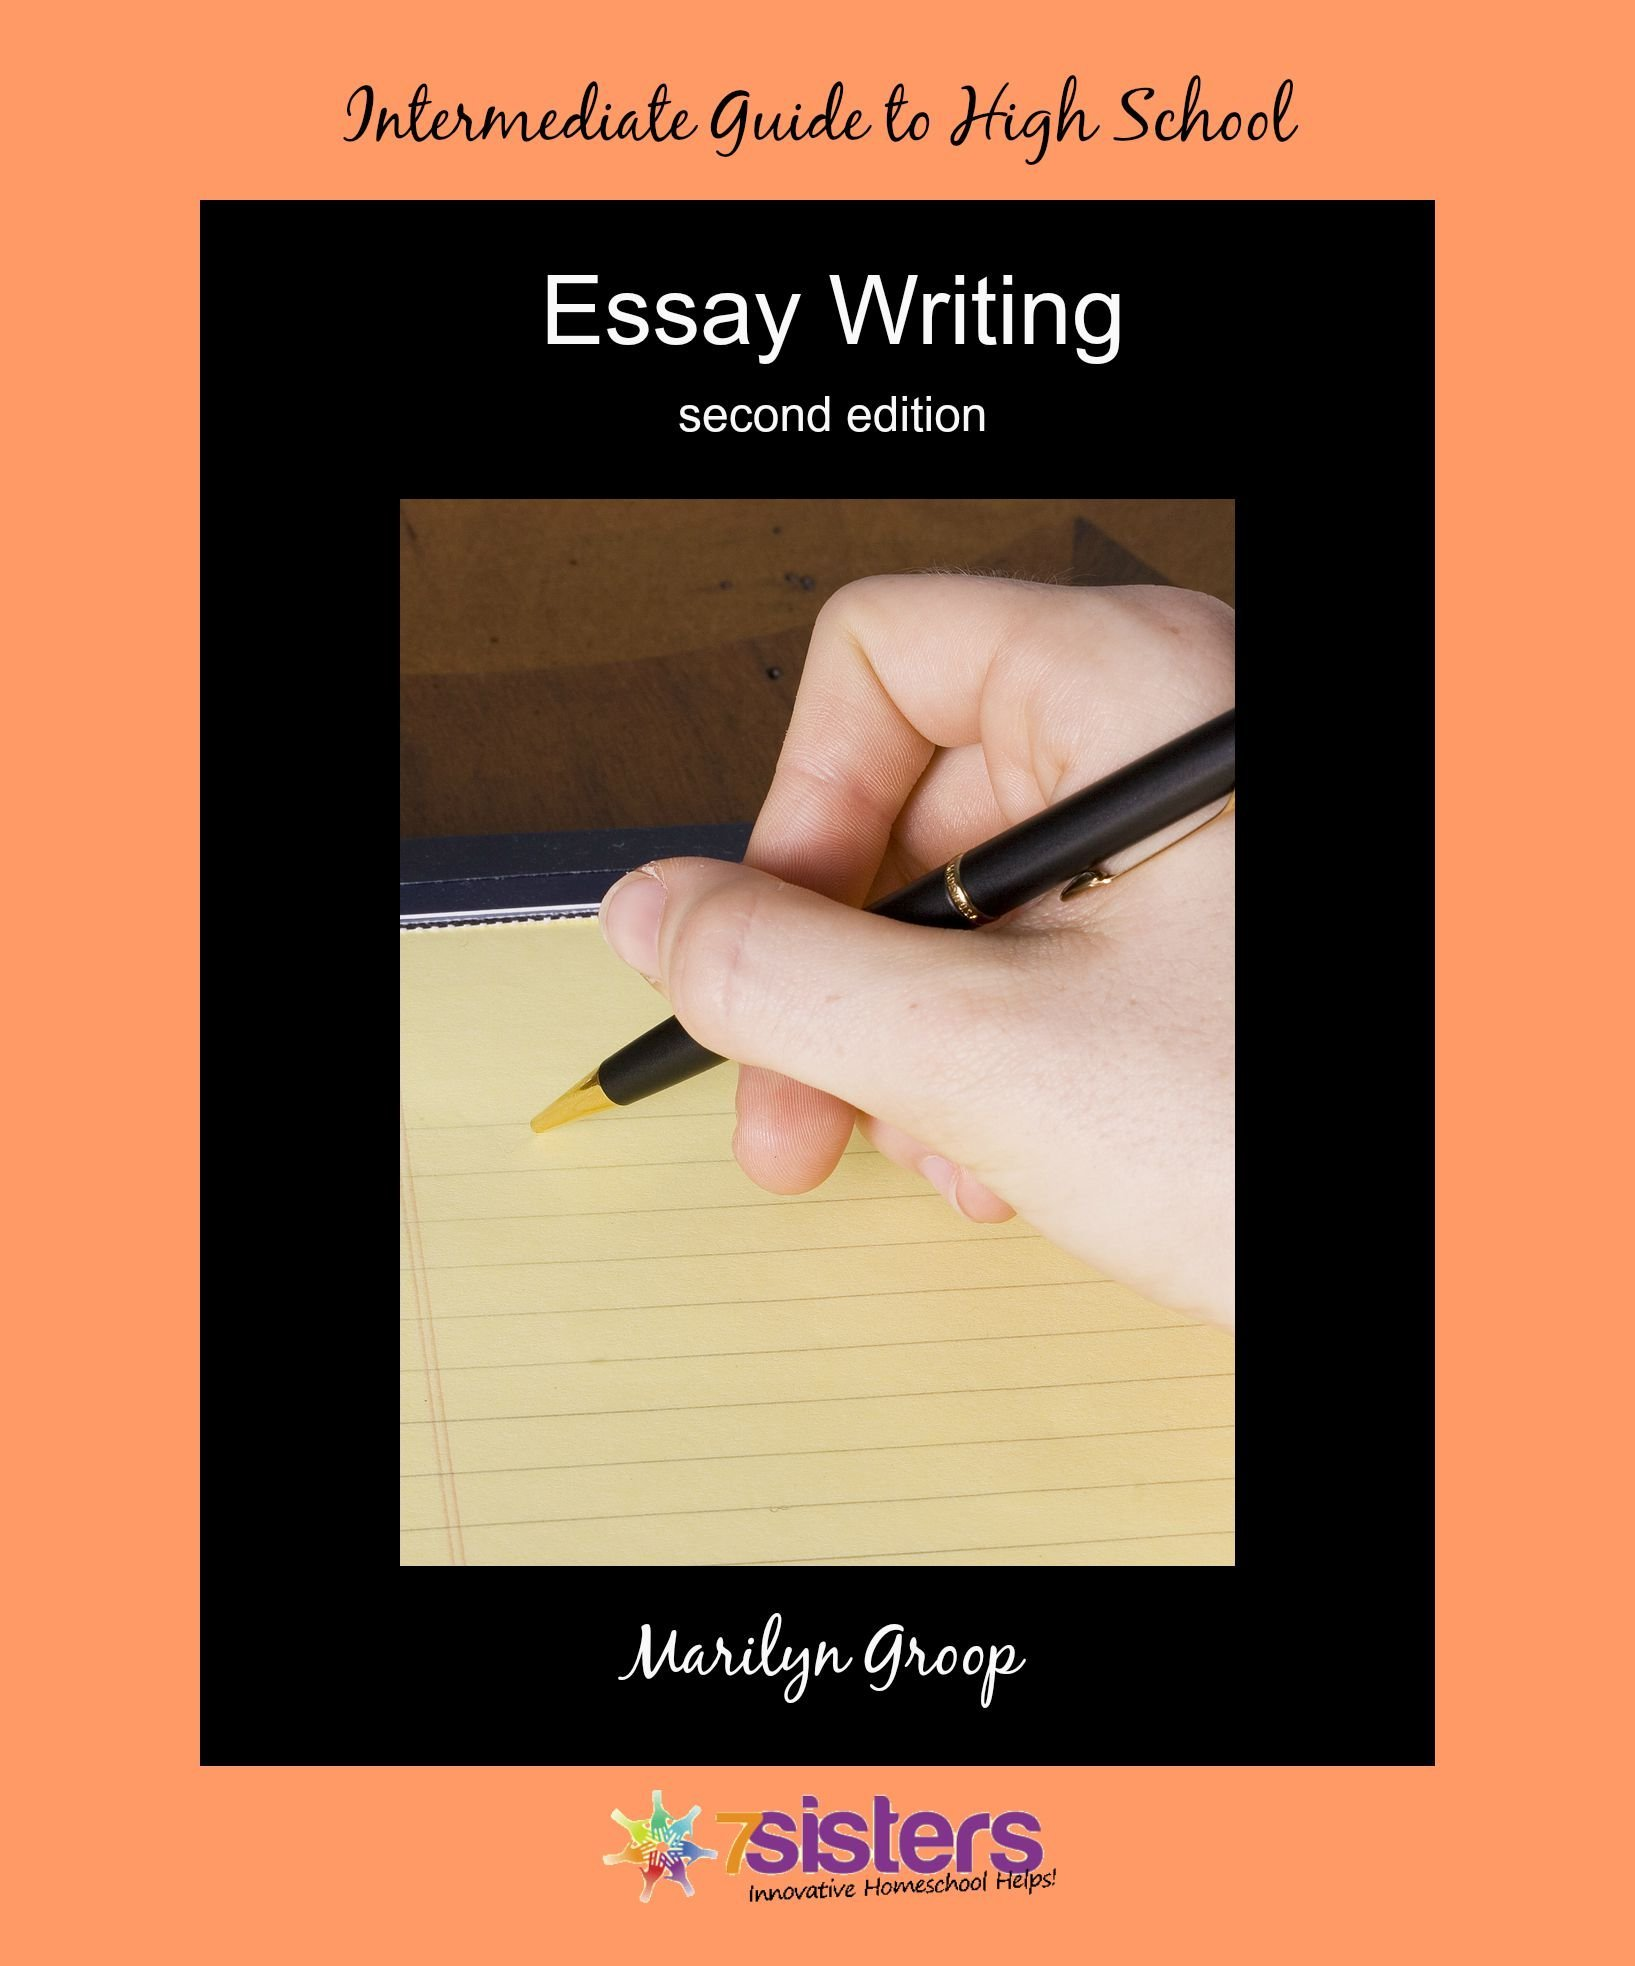 High School Senior Essay  The Yellow Wallpaper Critical Essay also Student Life Essay In English Intermediate Guide To High School Essay Writing Second Edition    Sistershomeschoolcom Essays On Health Care Reform